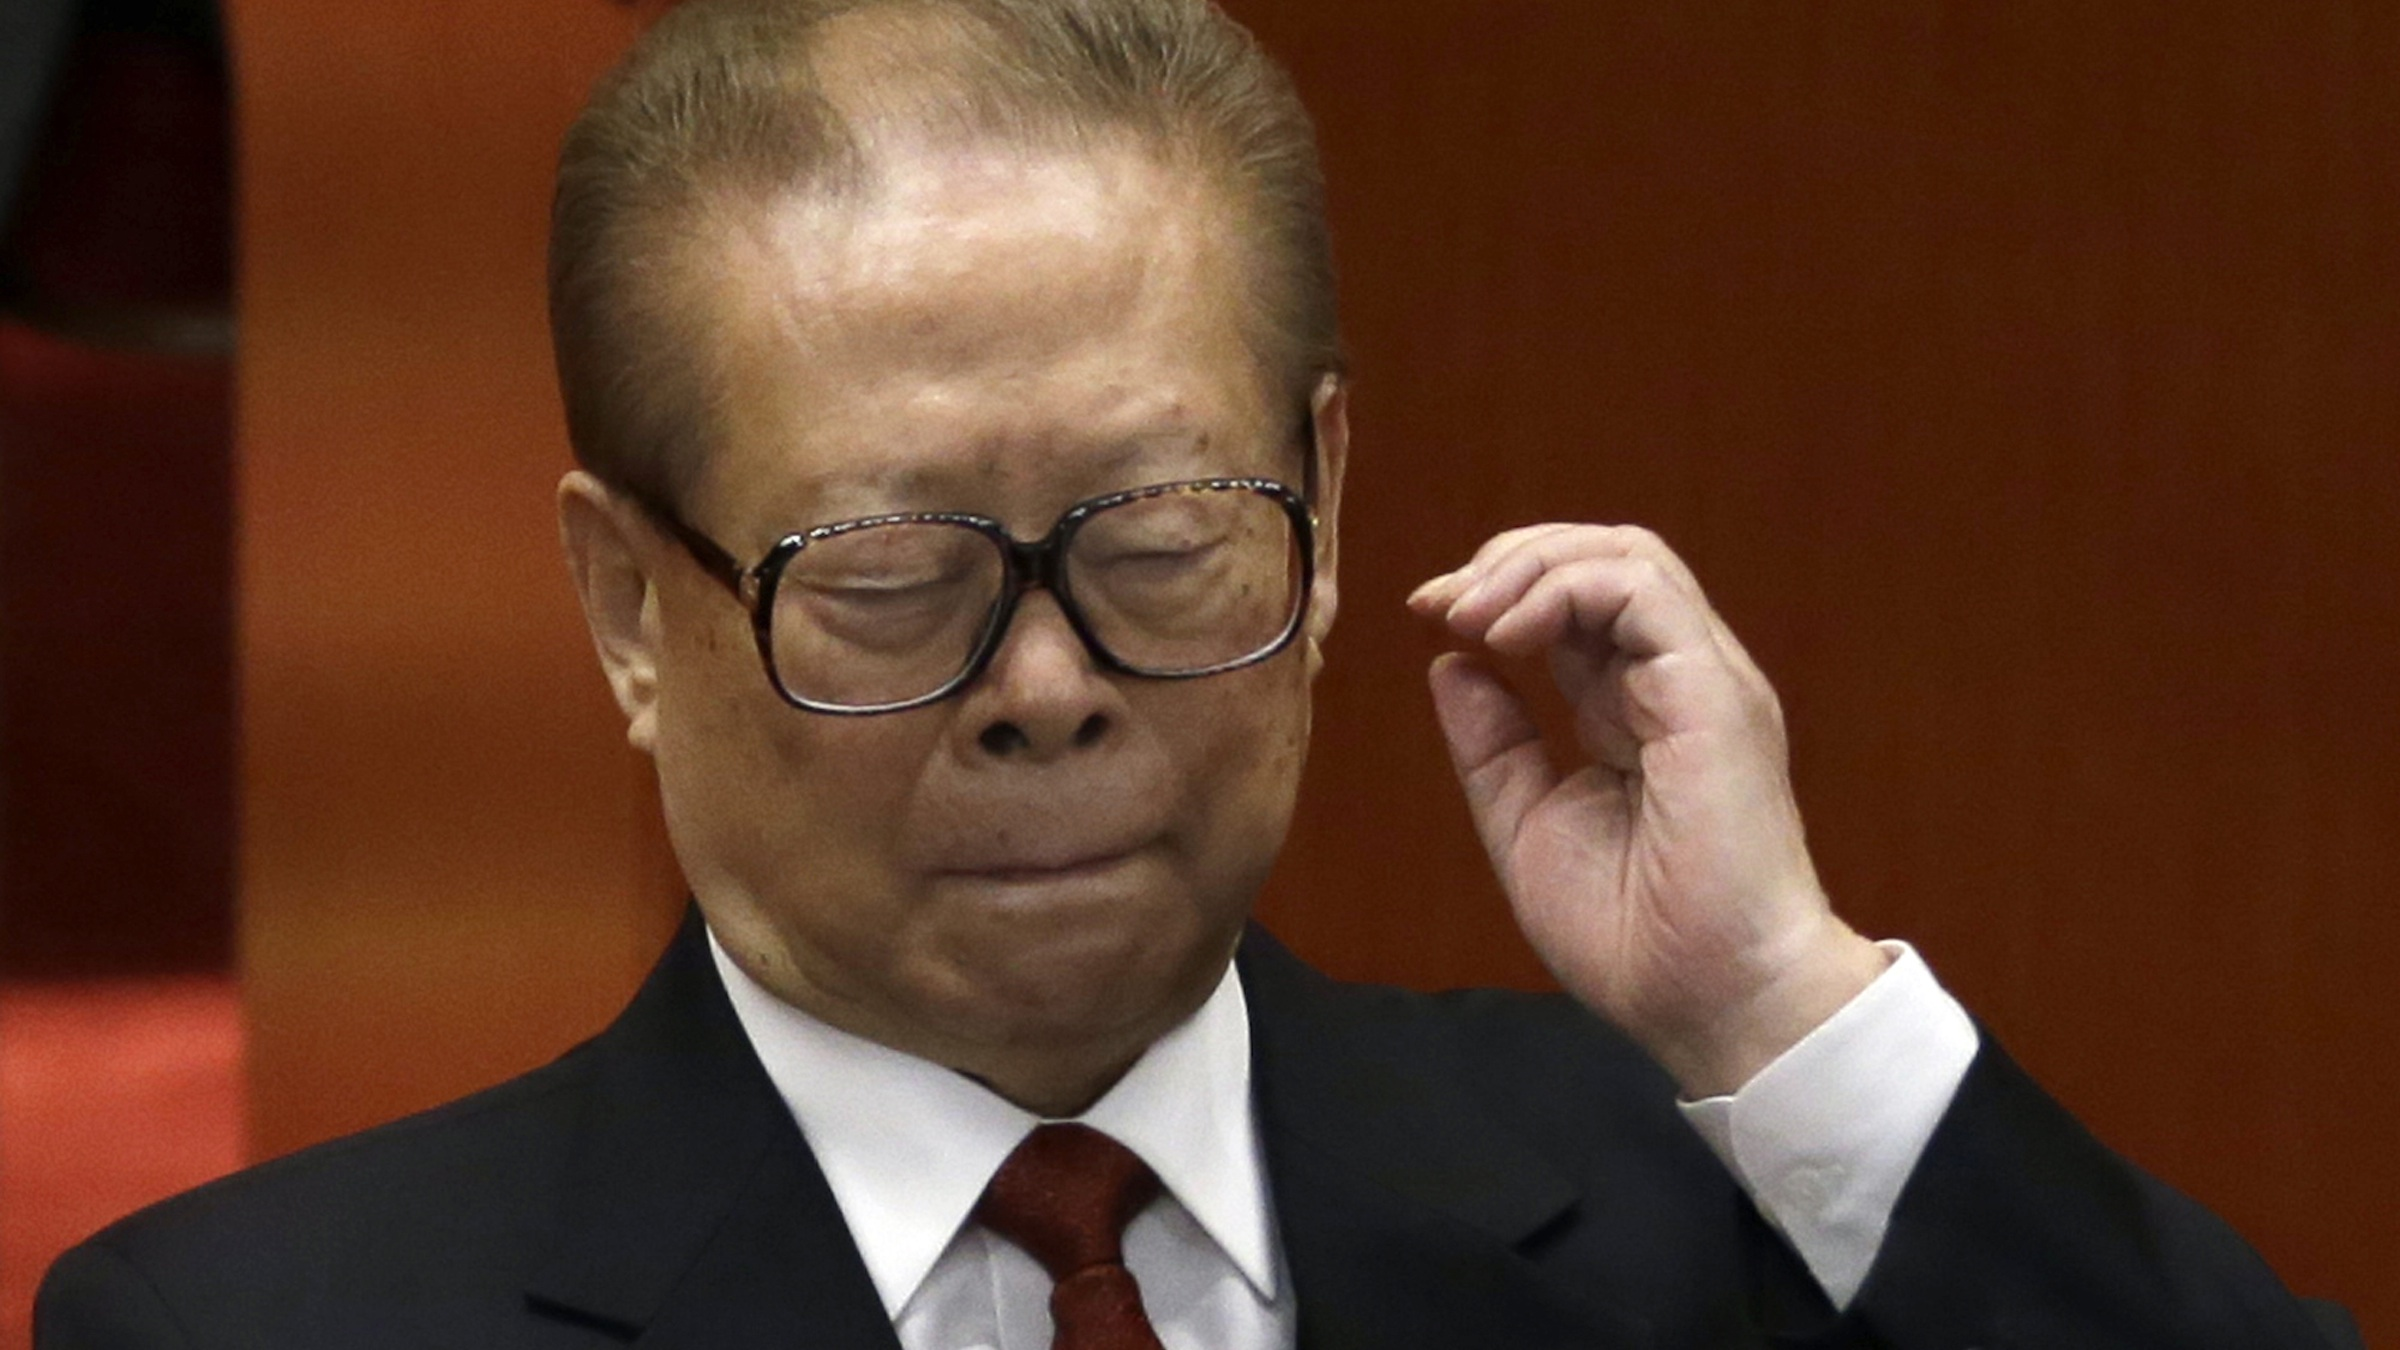 Former Chinese President Jiang Zemin attends the opening session of the 18th Communist Party Congress held at the Great Hall of the People in Beijing, China, Thursday, Nov. 8, 2012. (AP Photo/Ng Han Guan)